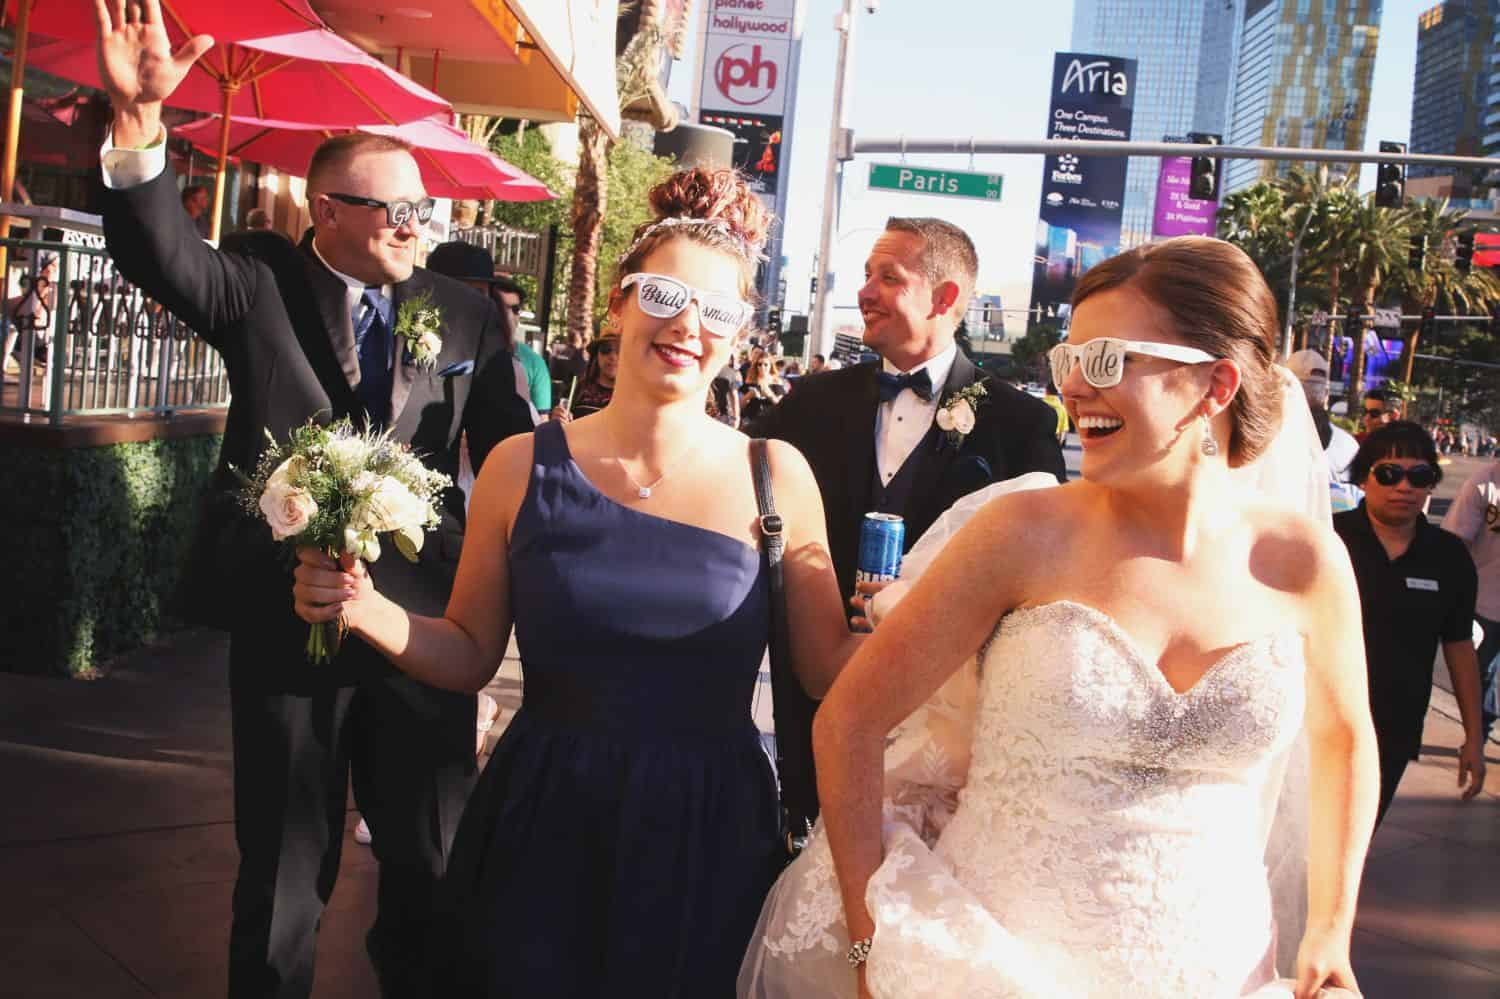 A wedding party walks through Las Vegas wearing sunglasses.